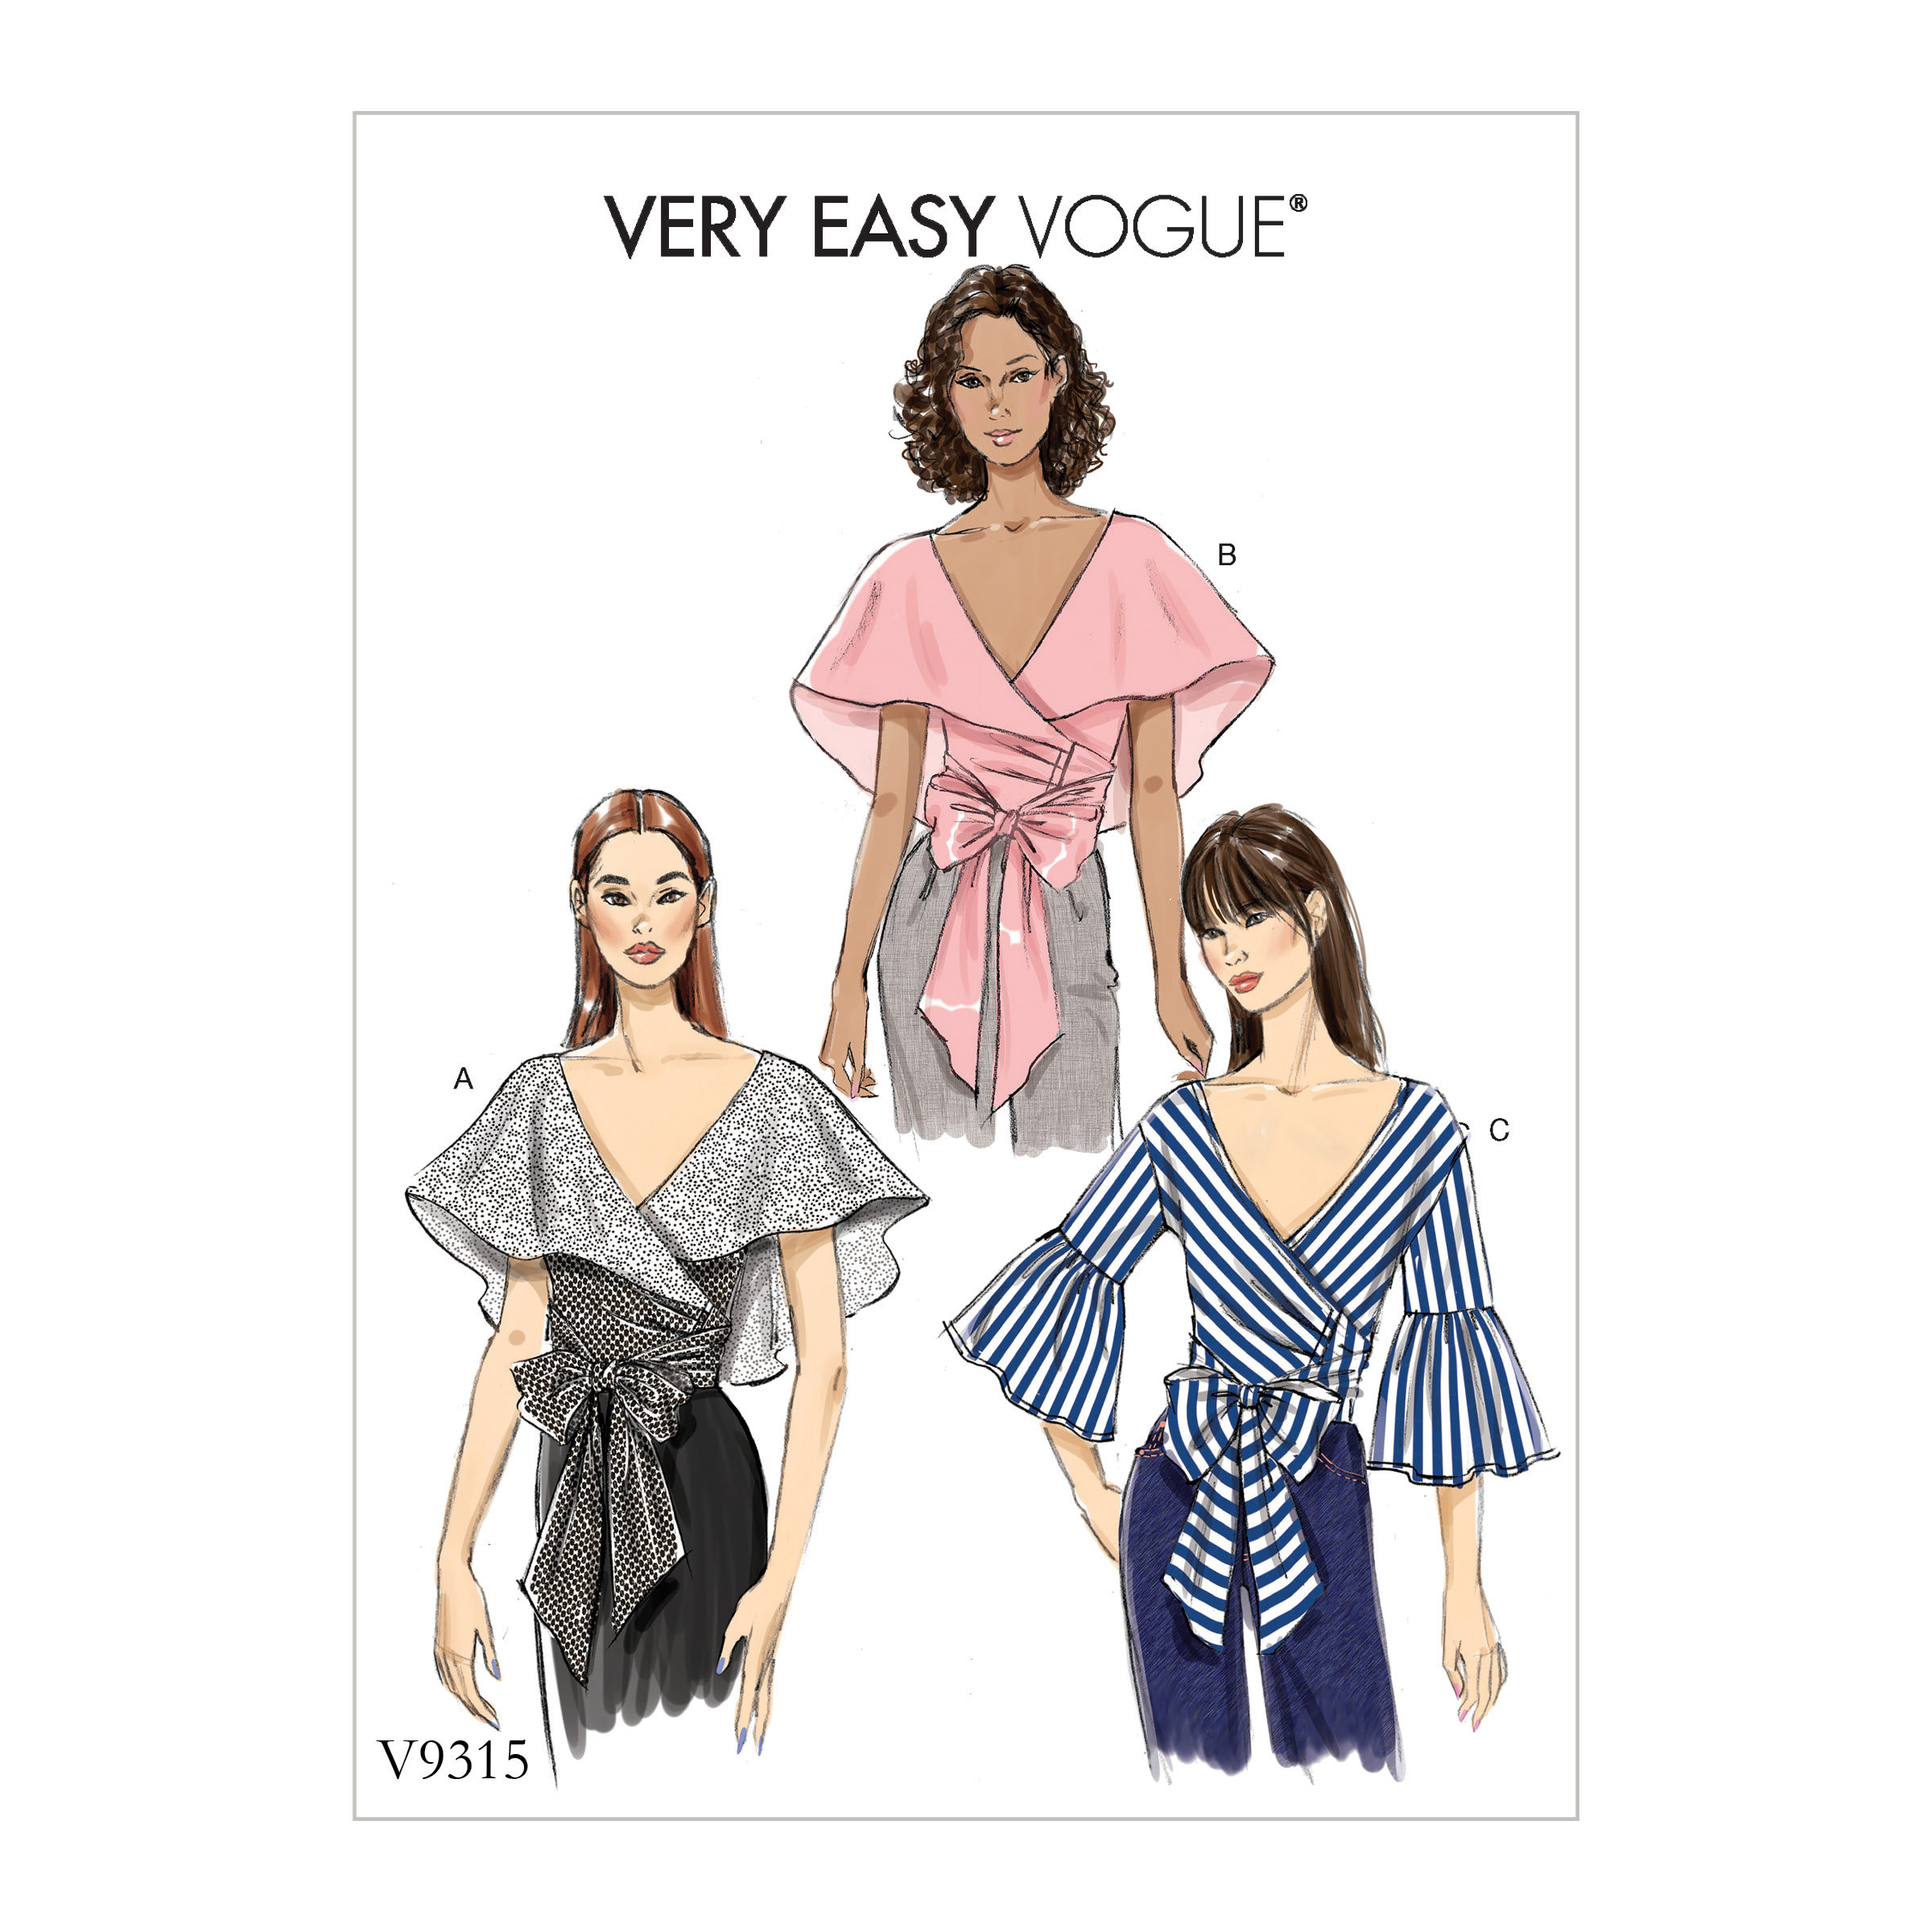 Vogue Patterns Sewing Pattern Misses' Top-6-8-10-12-14